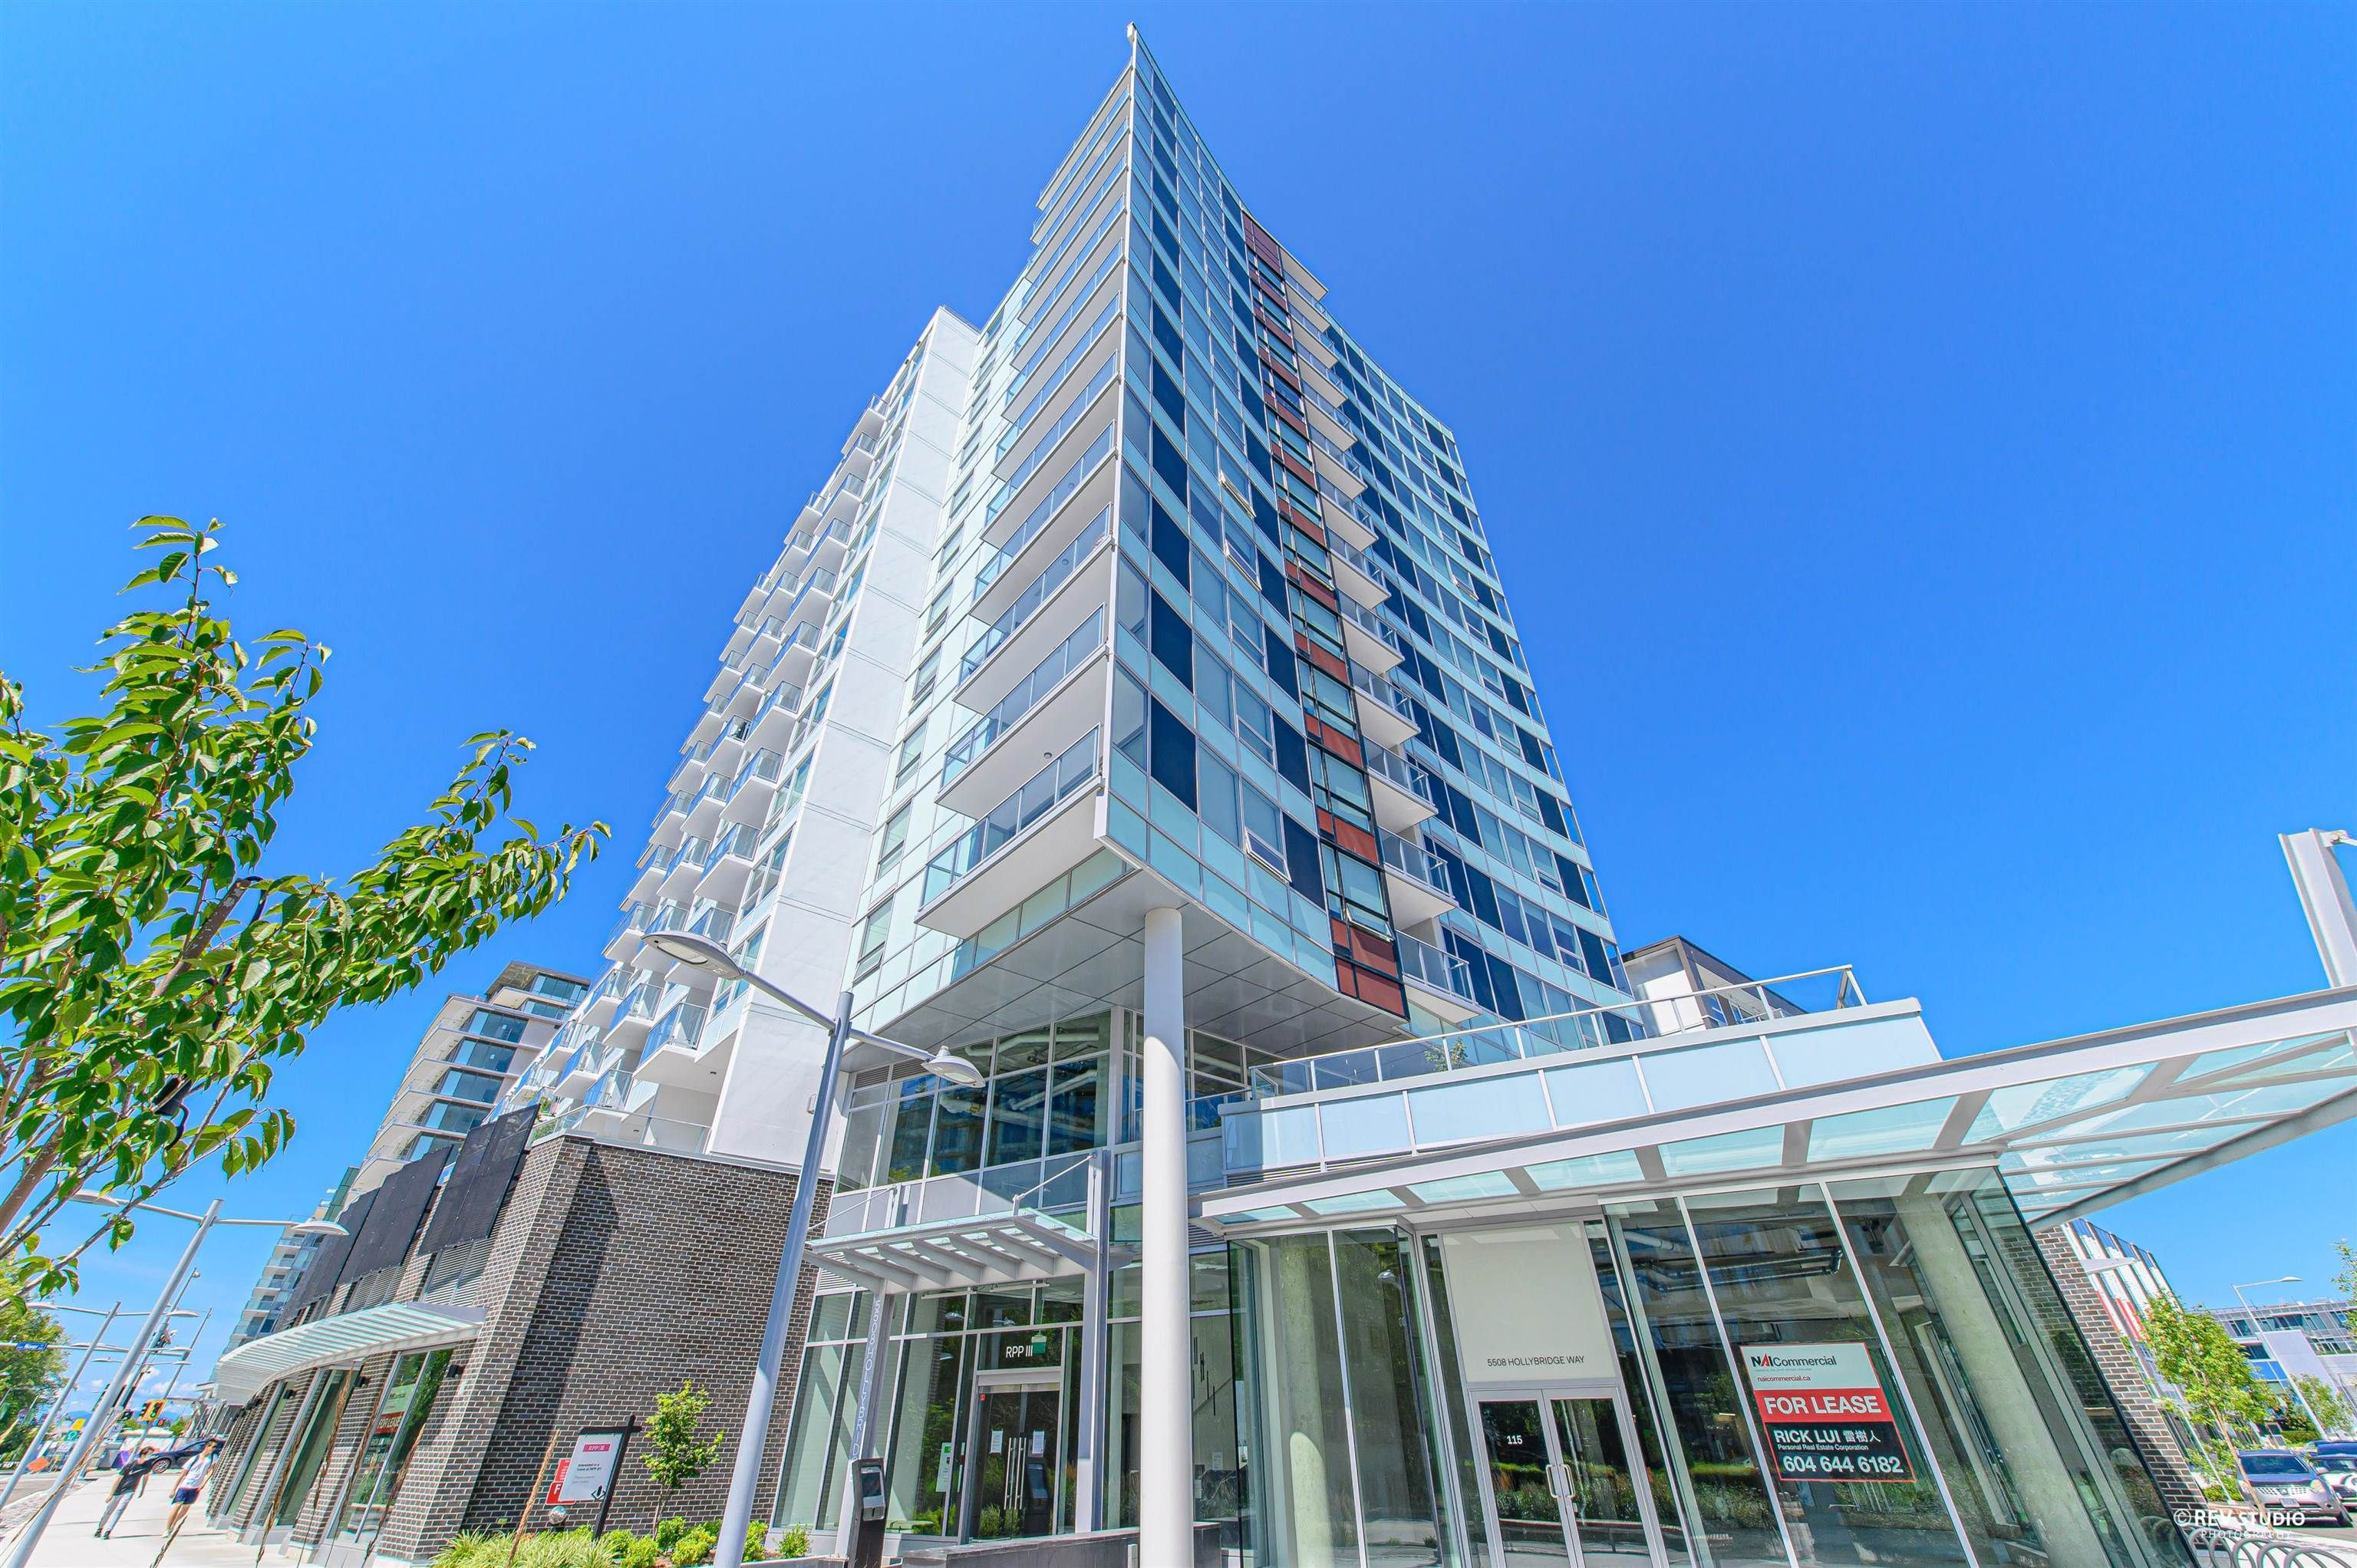 """Main Photo: 1002 5508 HOLLYBRIDGE Way in Richmond: Brighouse Condo for sale in """"RIVER PARK PLACE 3"""" : MLS®# R2622316"""